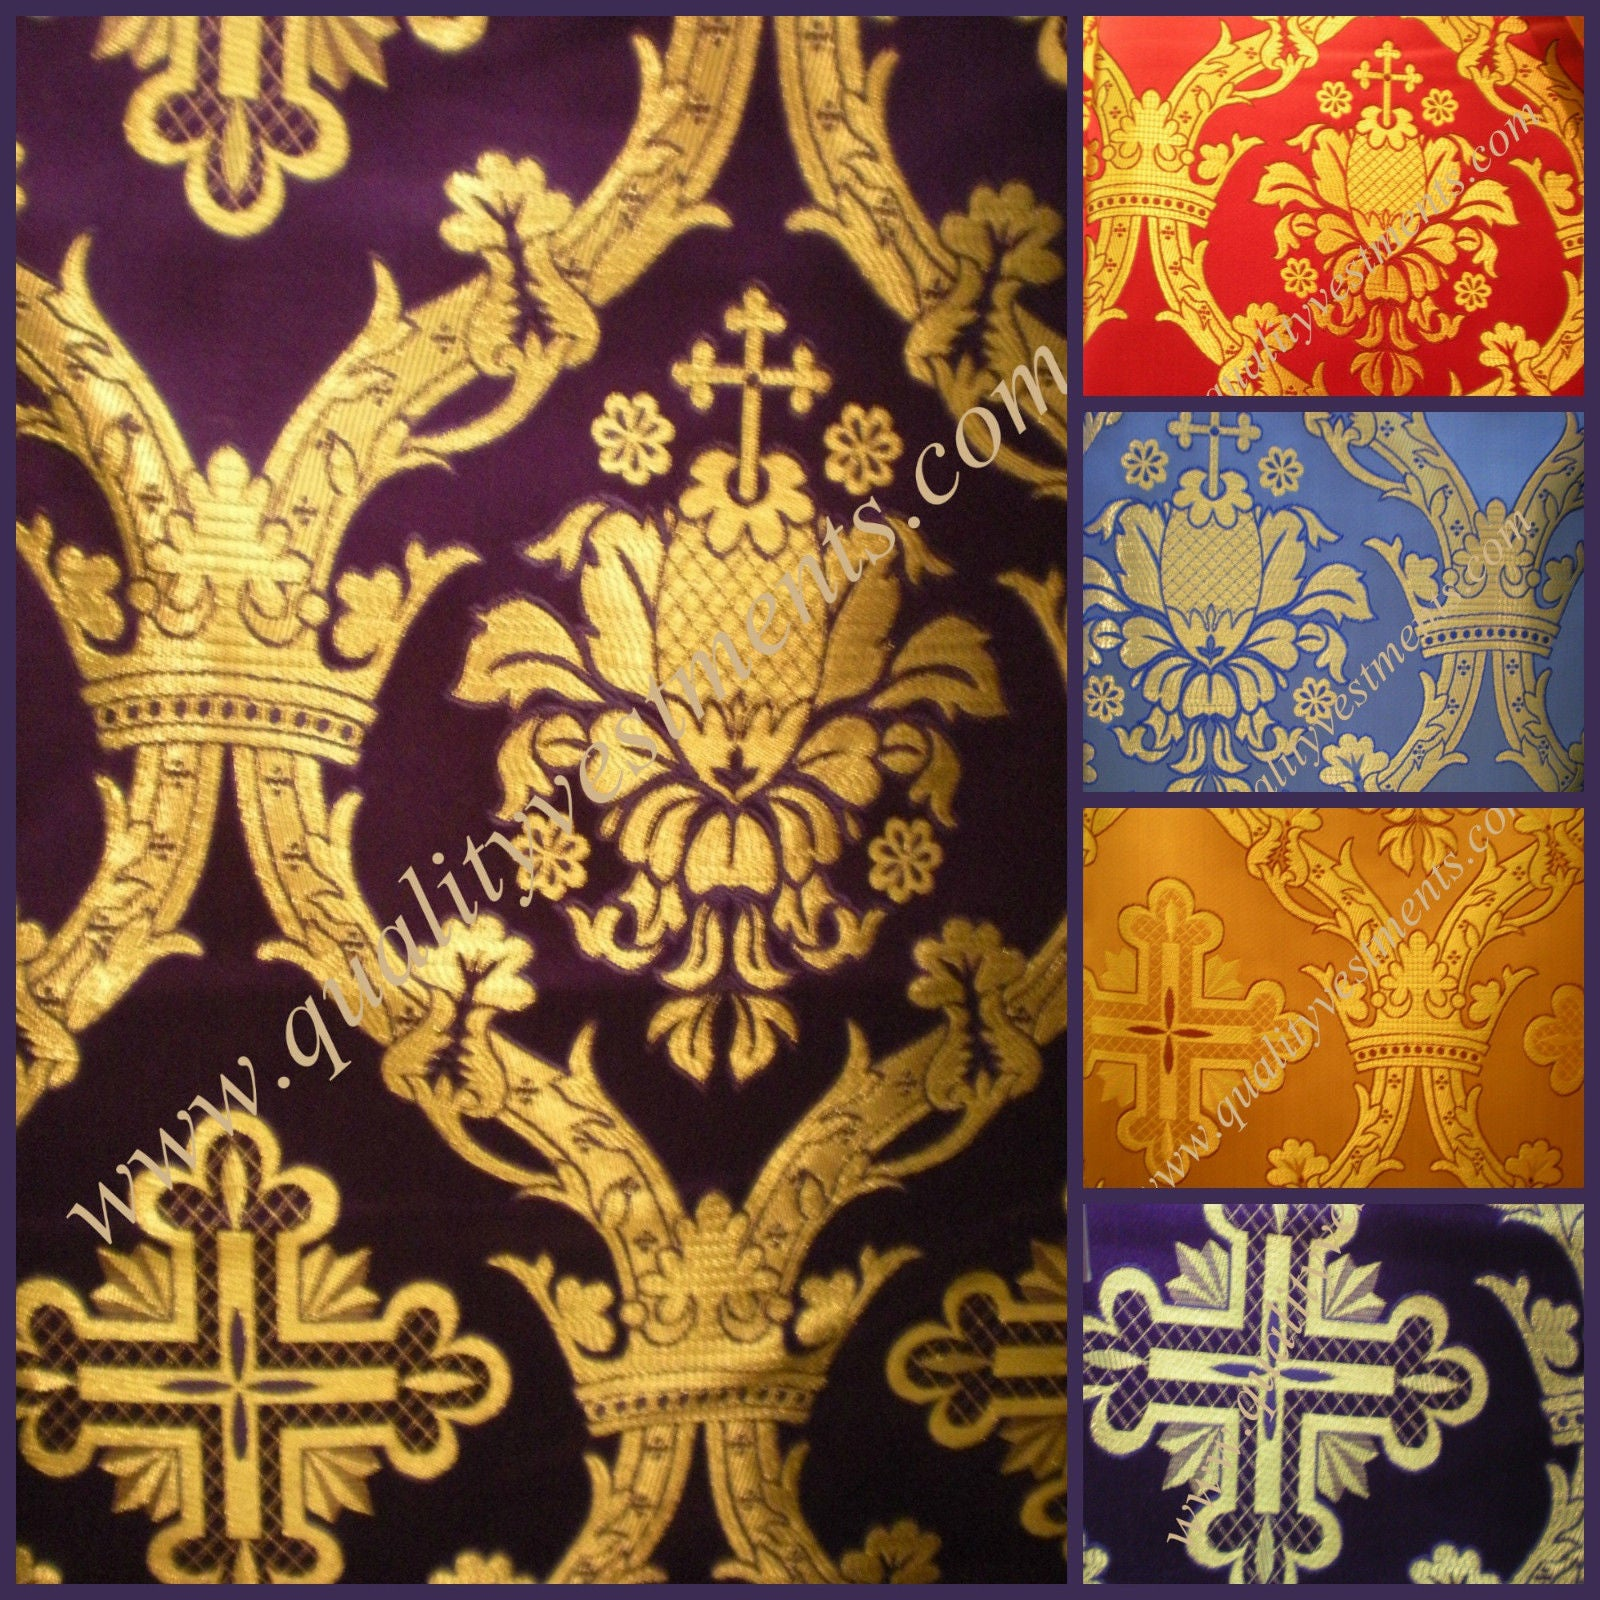 Crown Large cross pattern metallic vestment brocade Gold Red Green Blue etc